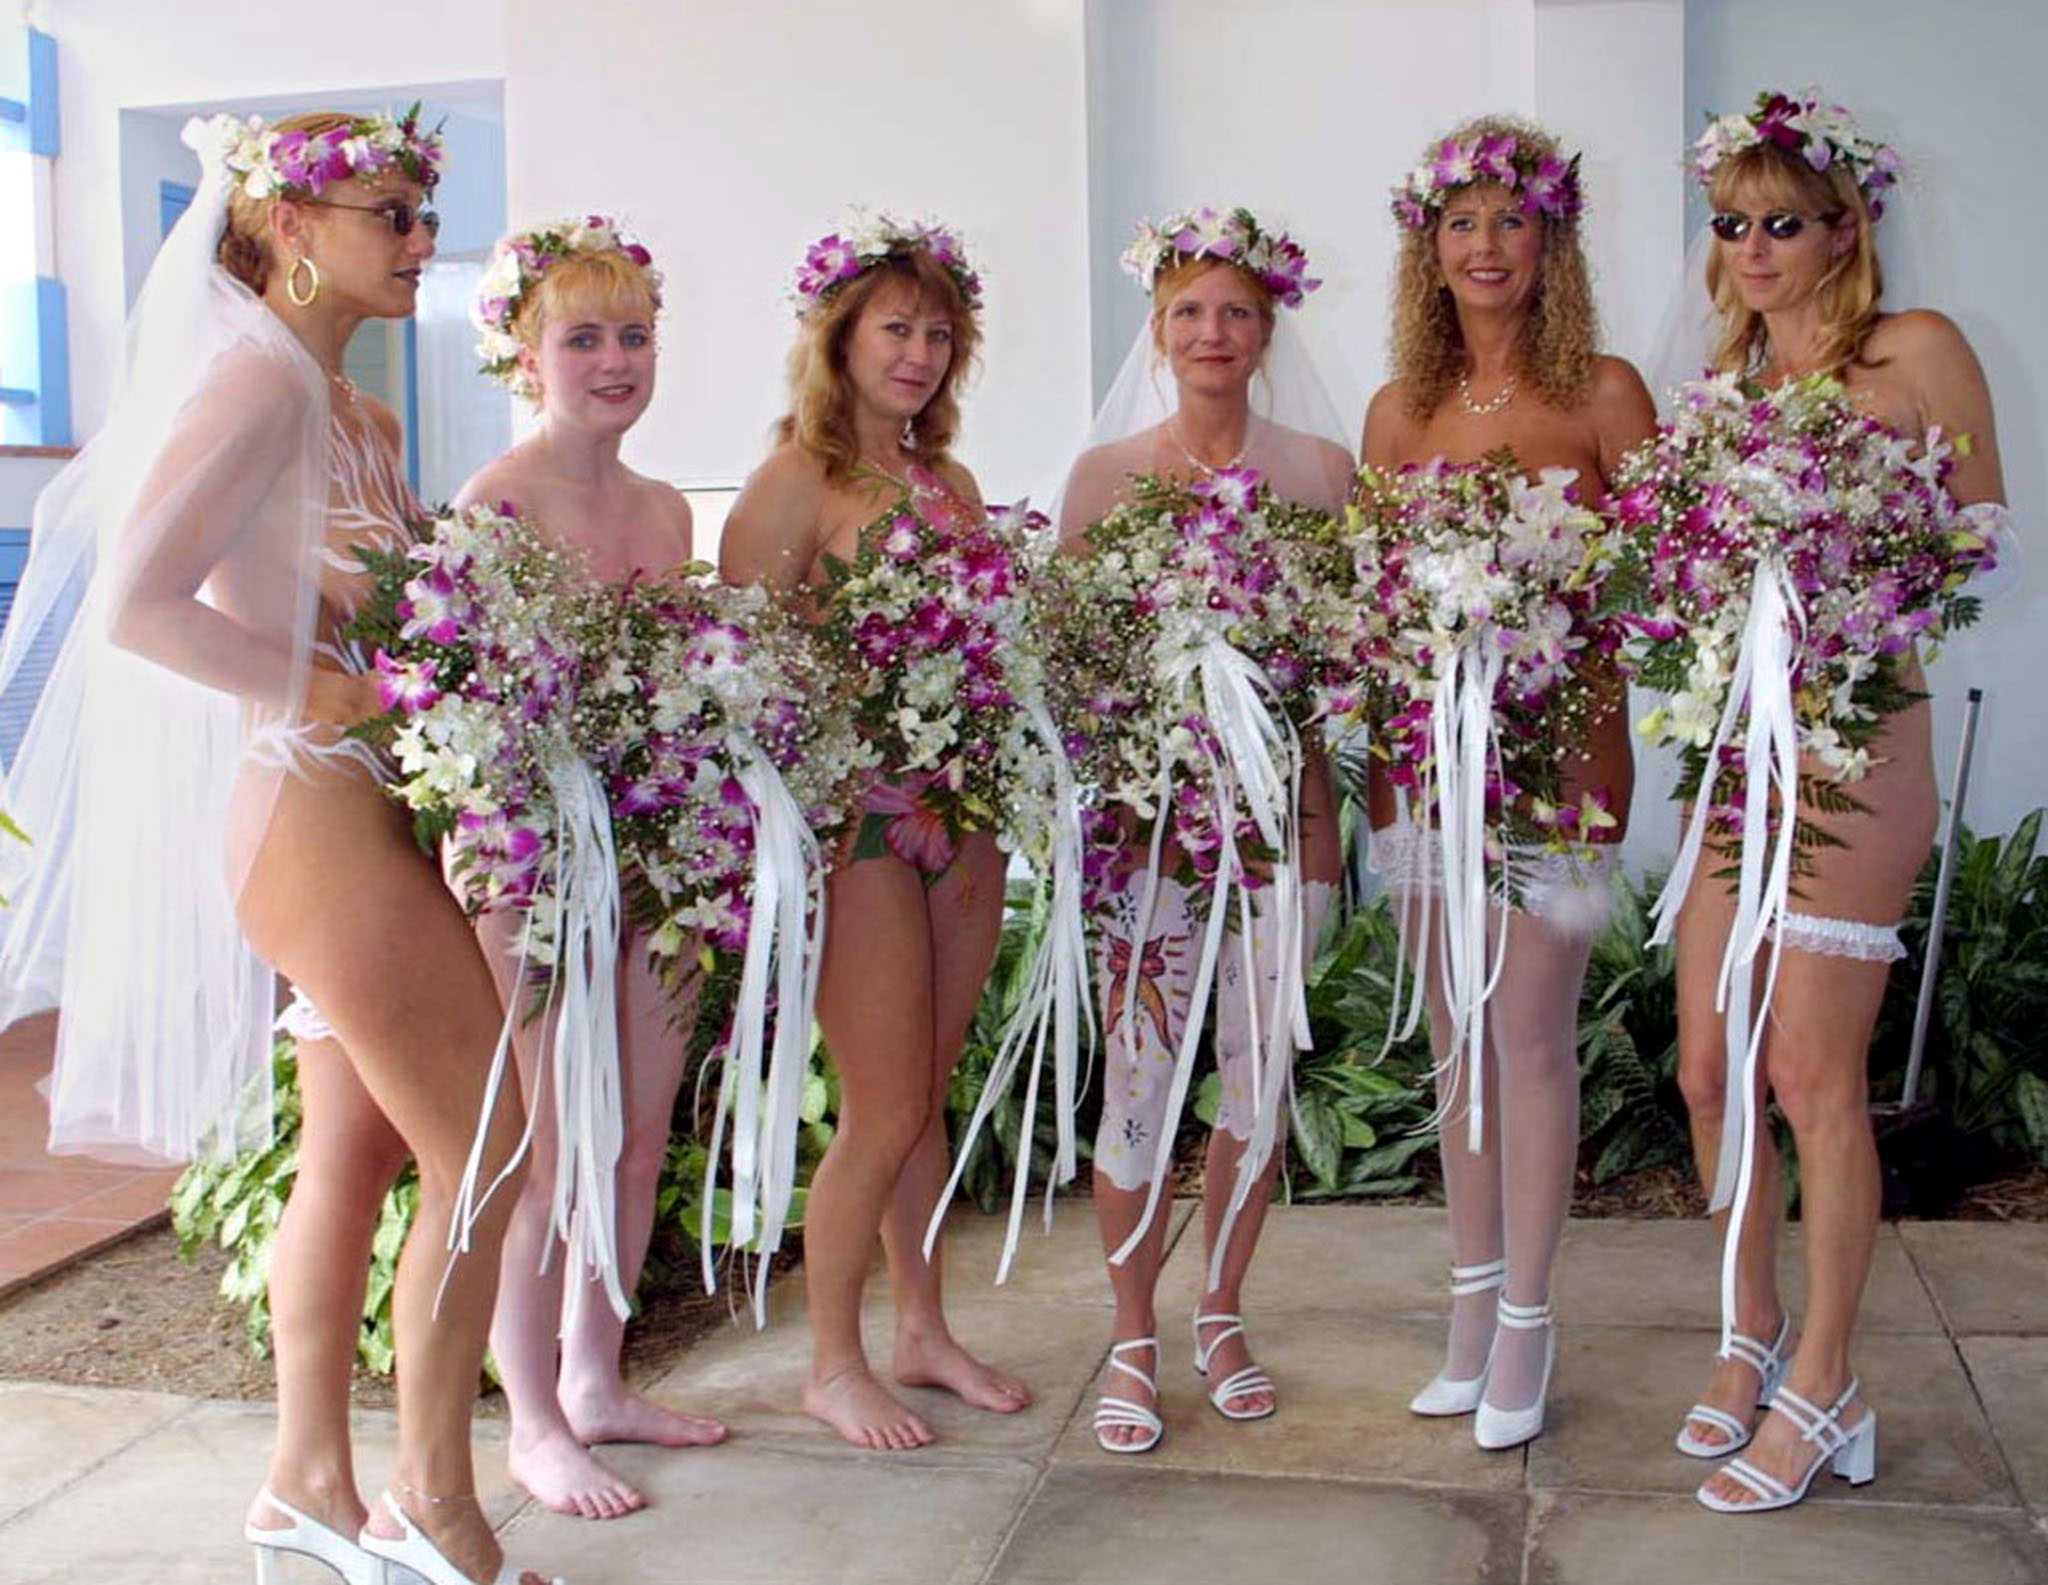 nudist-wedding-event-pictures